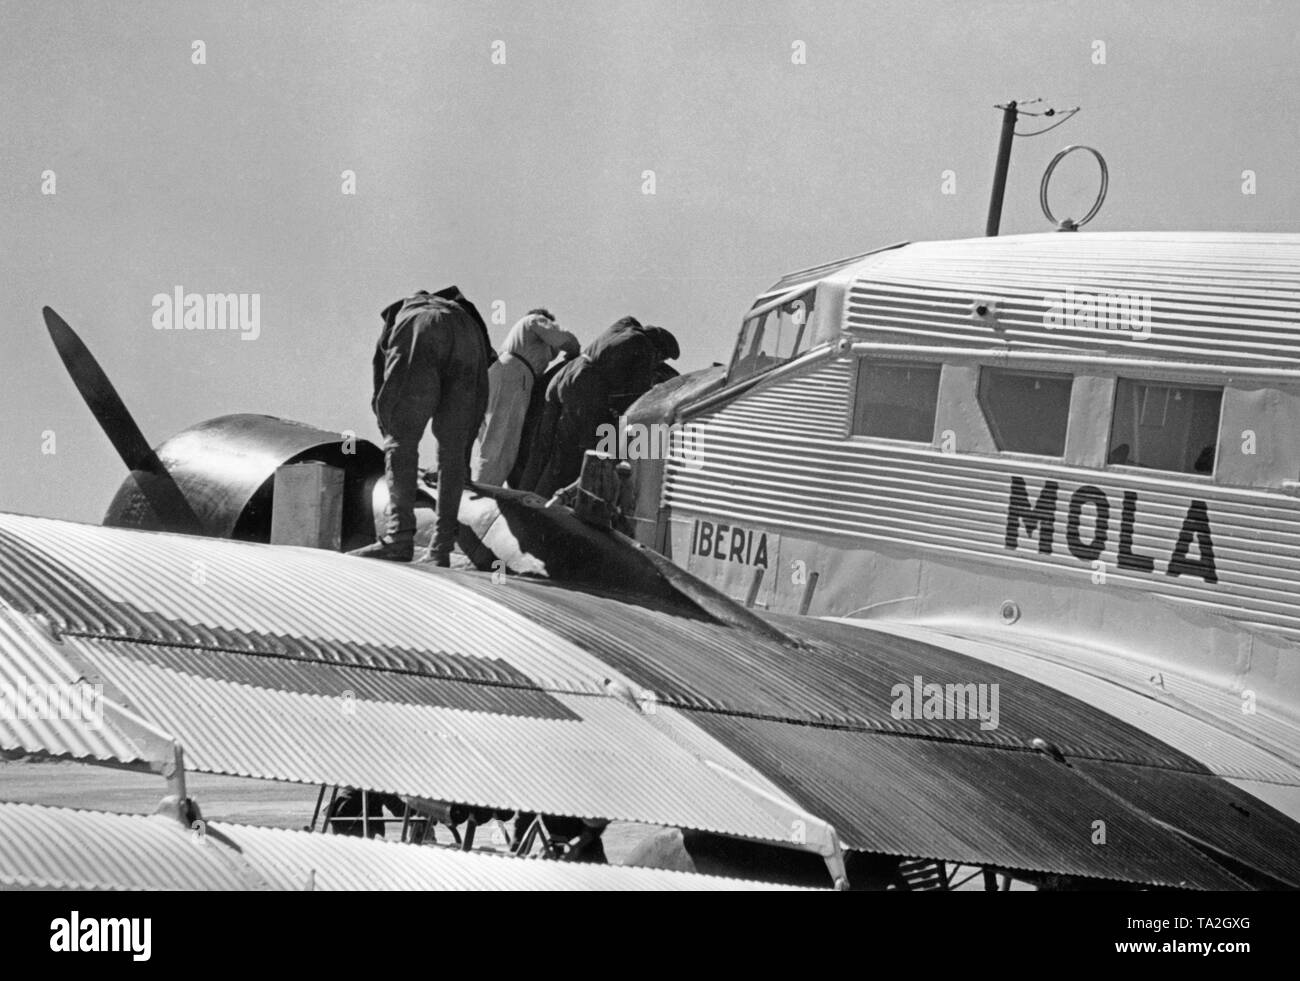 Photo of the wing, cockpits and engines of a German Junkers Ju 52 of the Spanish airline Iberia 1939 at the airport of Salamanca, Castile and Leon, Spain. Mechanics are working on one of the engines. The machine is named 'Mola', after general Emilio Mola Vidal (died 1937), one of the leaders of the uprising of General Francisco Franco. During the Civil War, the Deutsche Lufthansa and the Iberia (founded in 1927) carried out scheduled flights mostly with German pilots in the Spanish national zone from 1937. The aircraft were provided by the Deutsche Lufthansa AG. - Stock Image